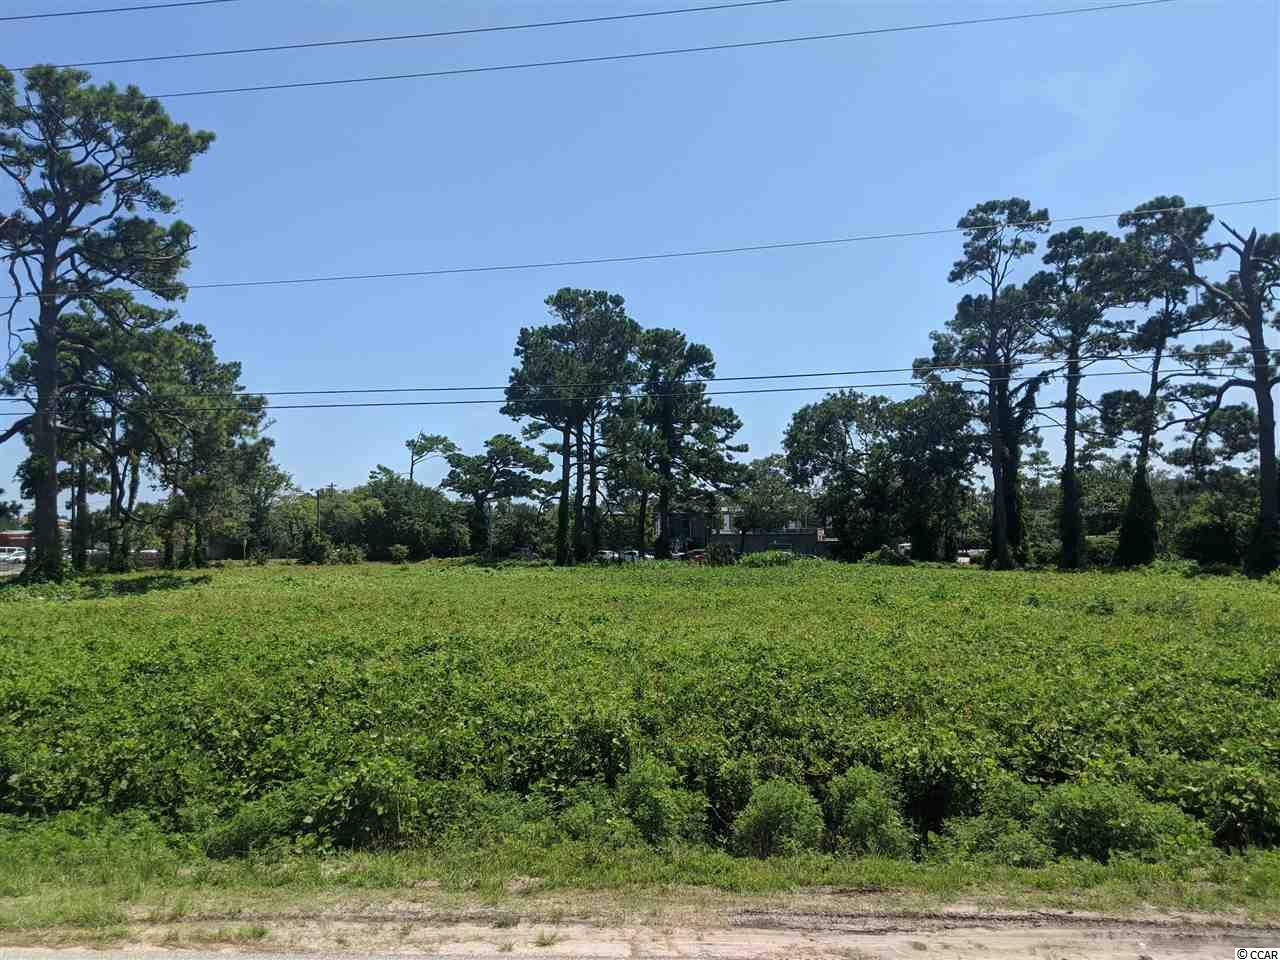 Prime Commercial .26 Acre Lot Zoned for C-3  Downtown Myrtle Beach.  Close to the Beach!  Sign is on the Lot.    Build your Business here Today!